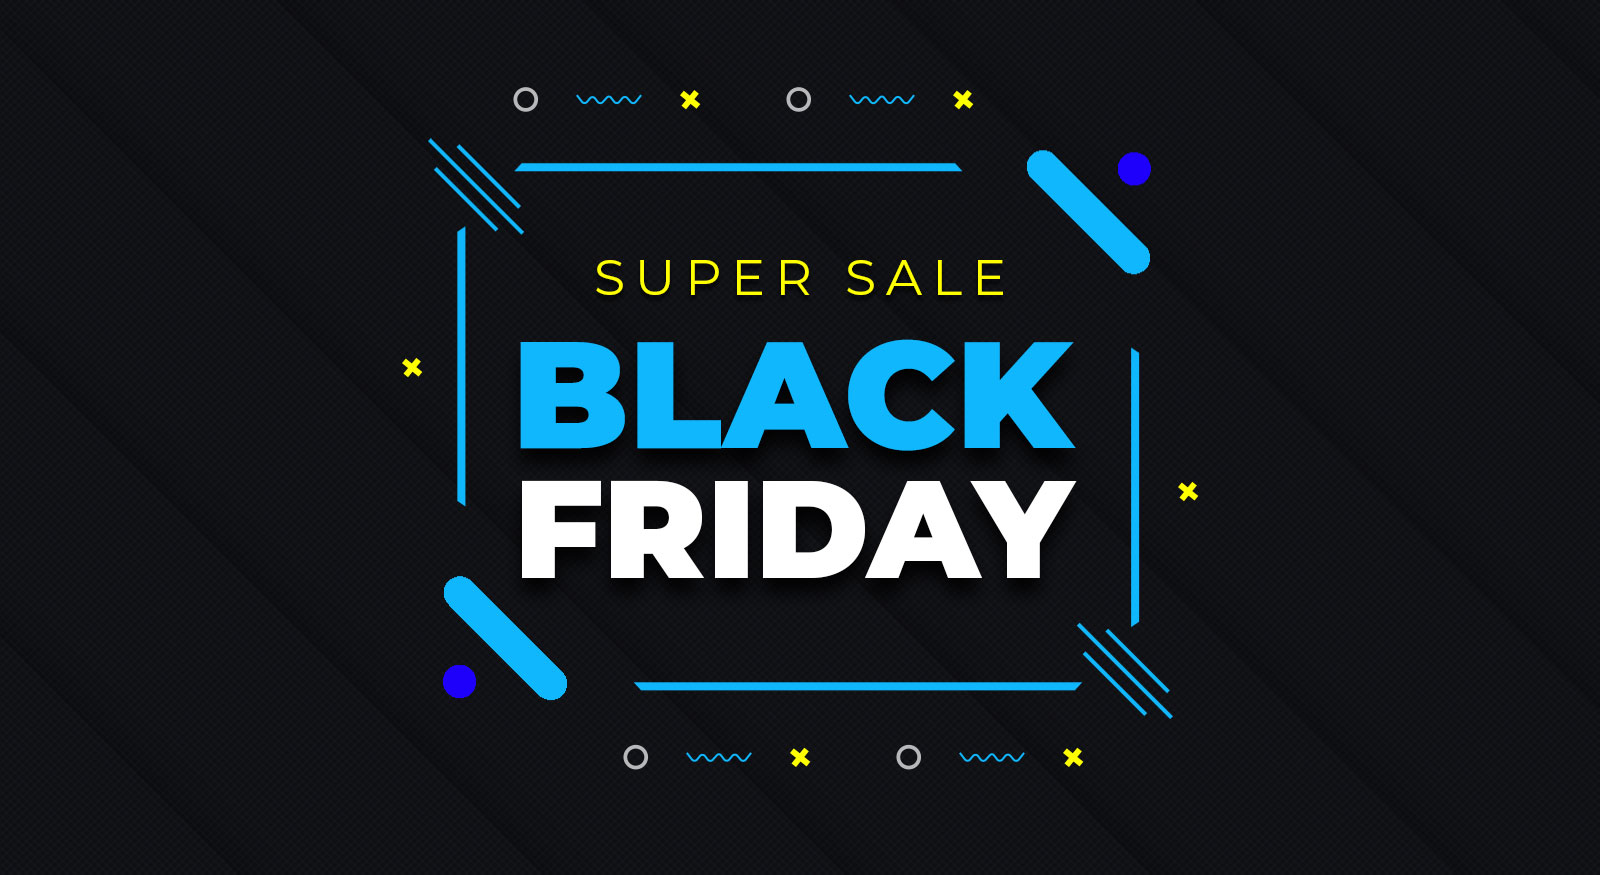 Black Friday Special: 25% Off Website Development